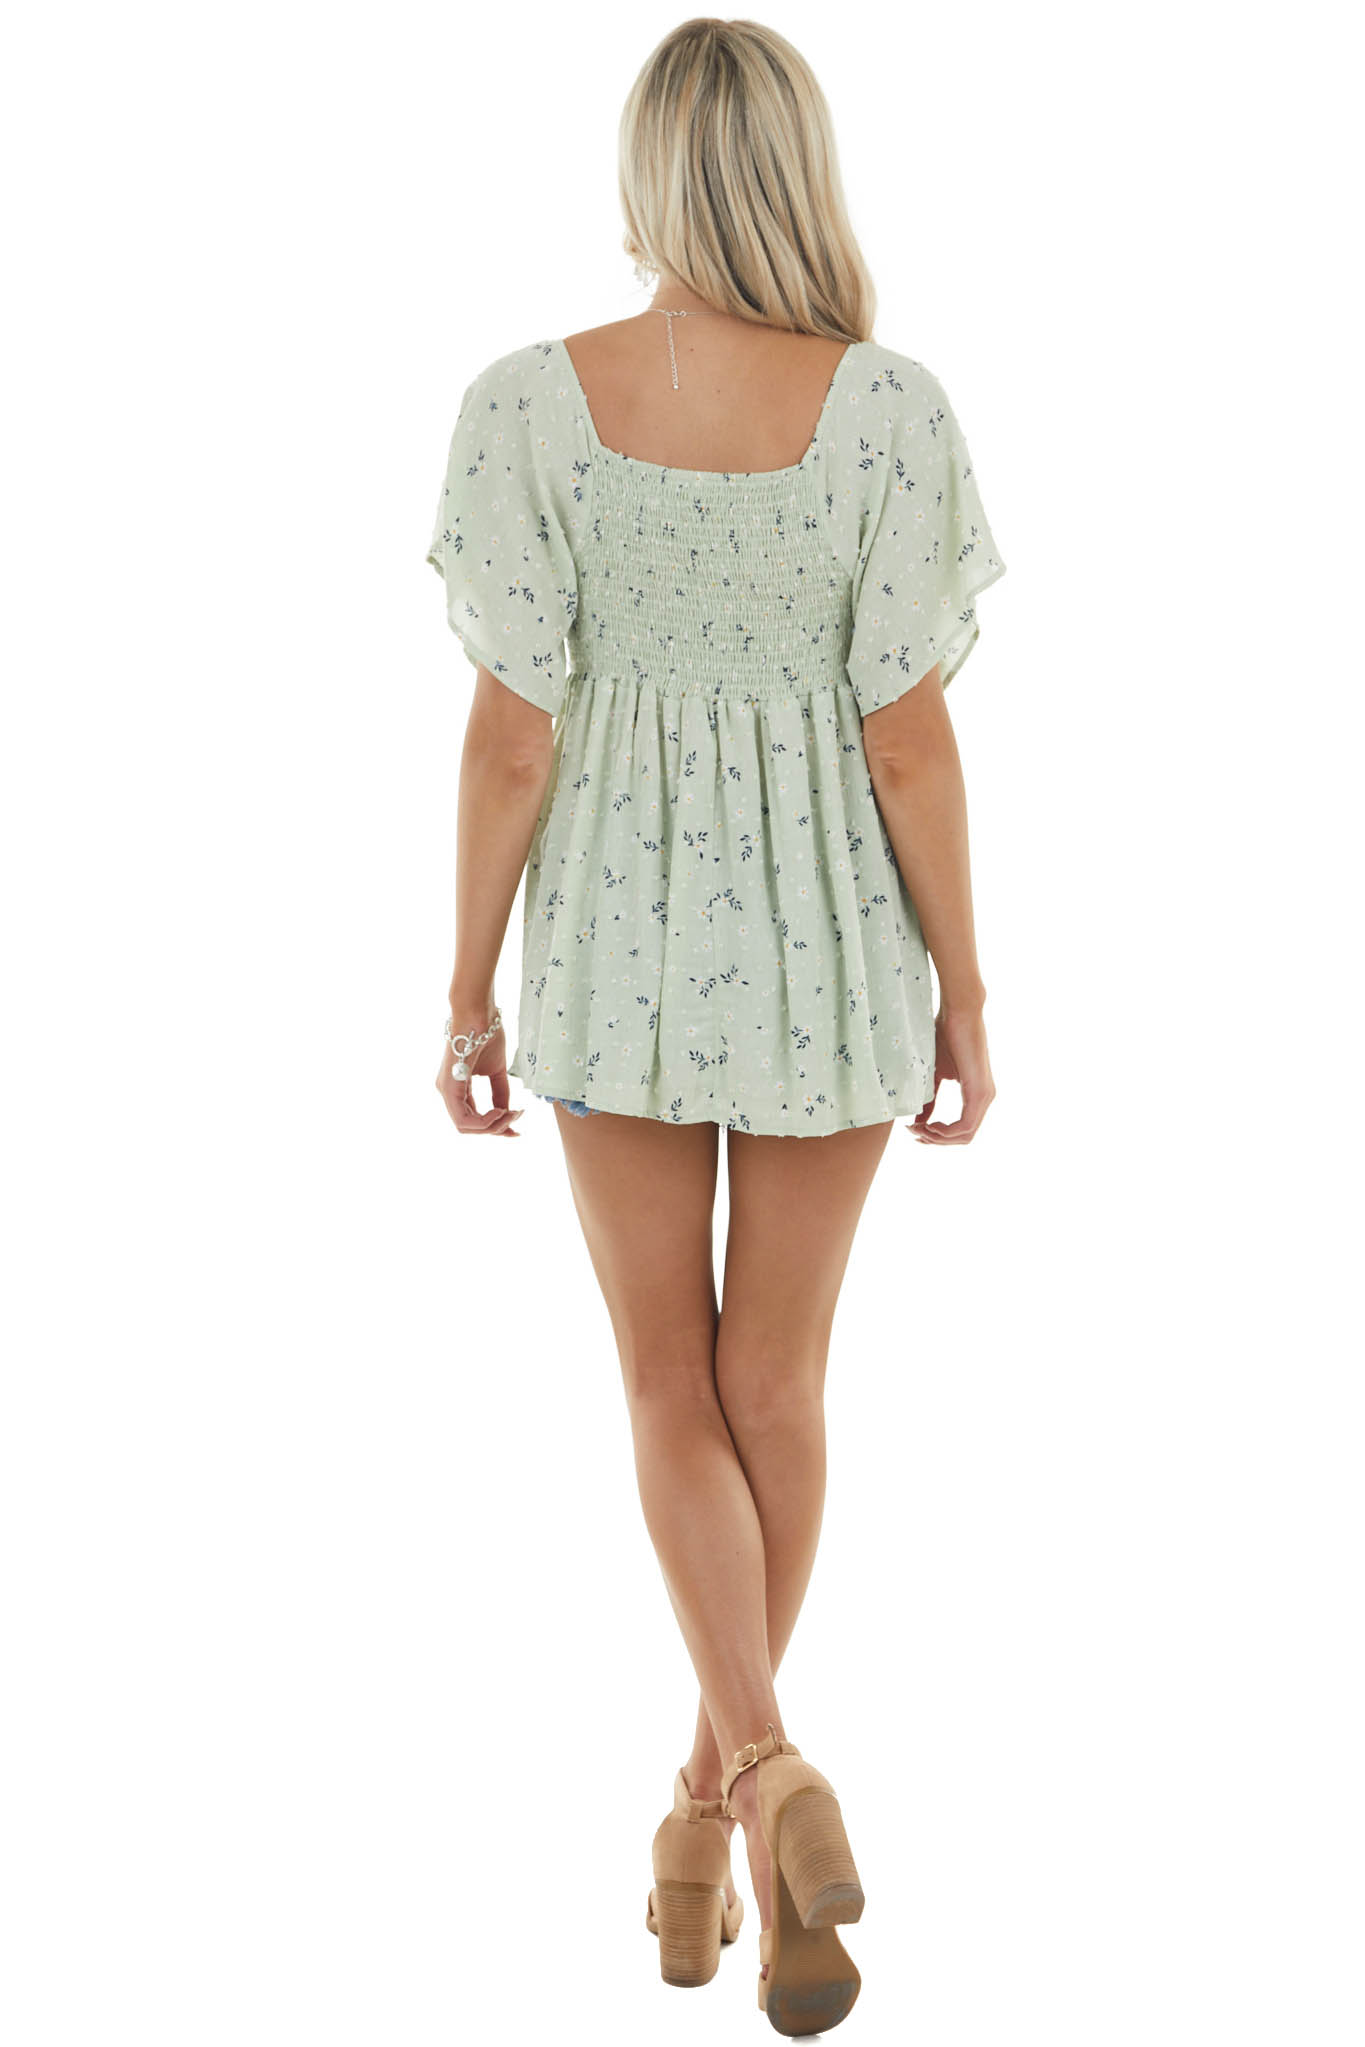 Sage Floral Print and Swiss Dot Blouse with Ruffle Detailing